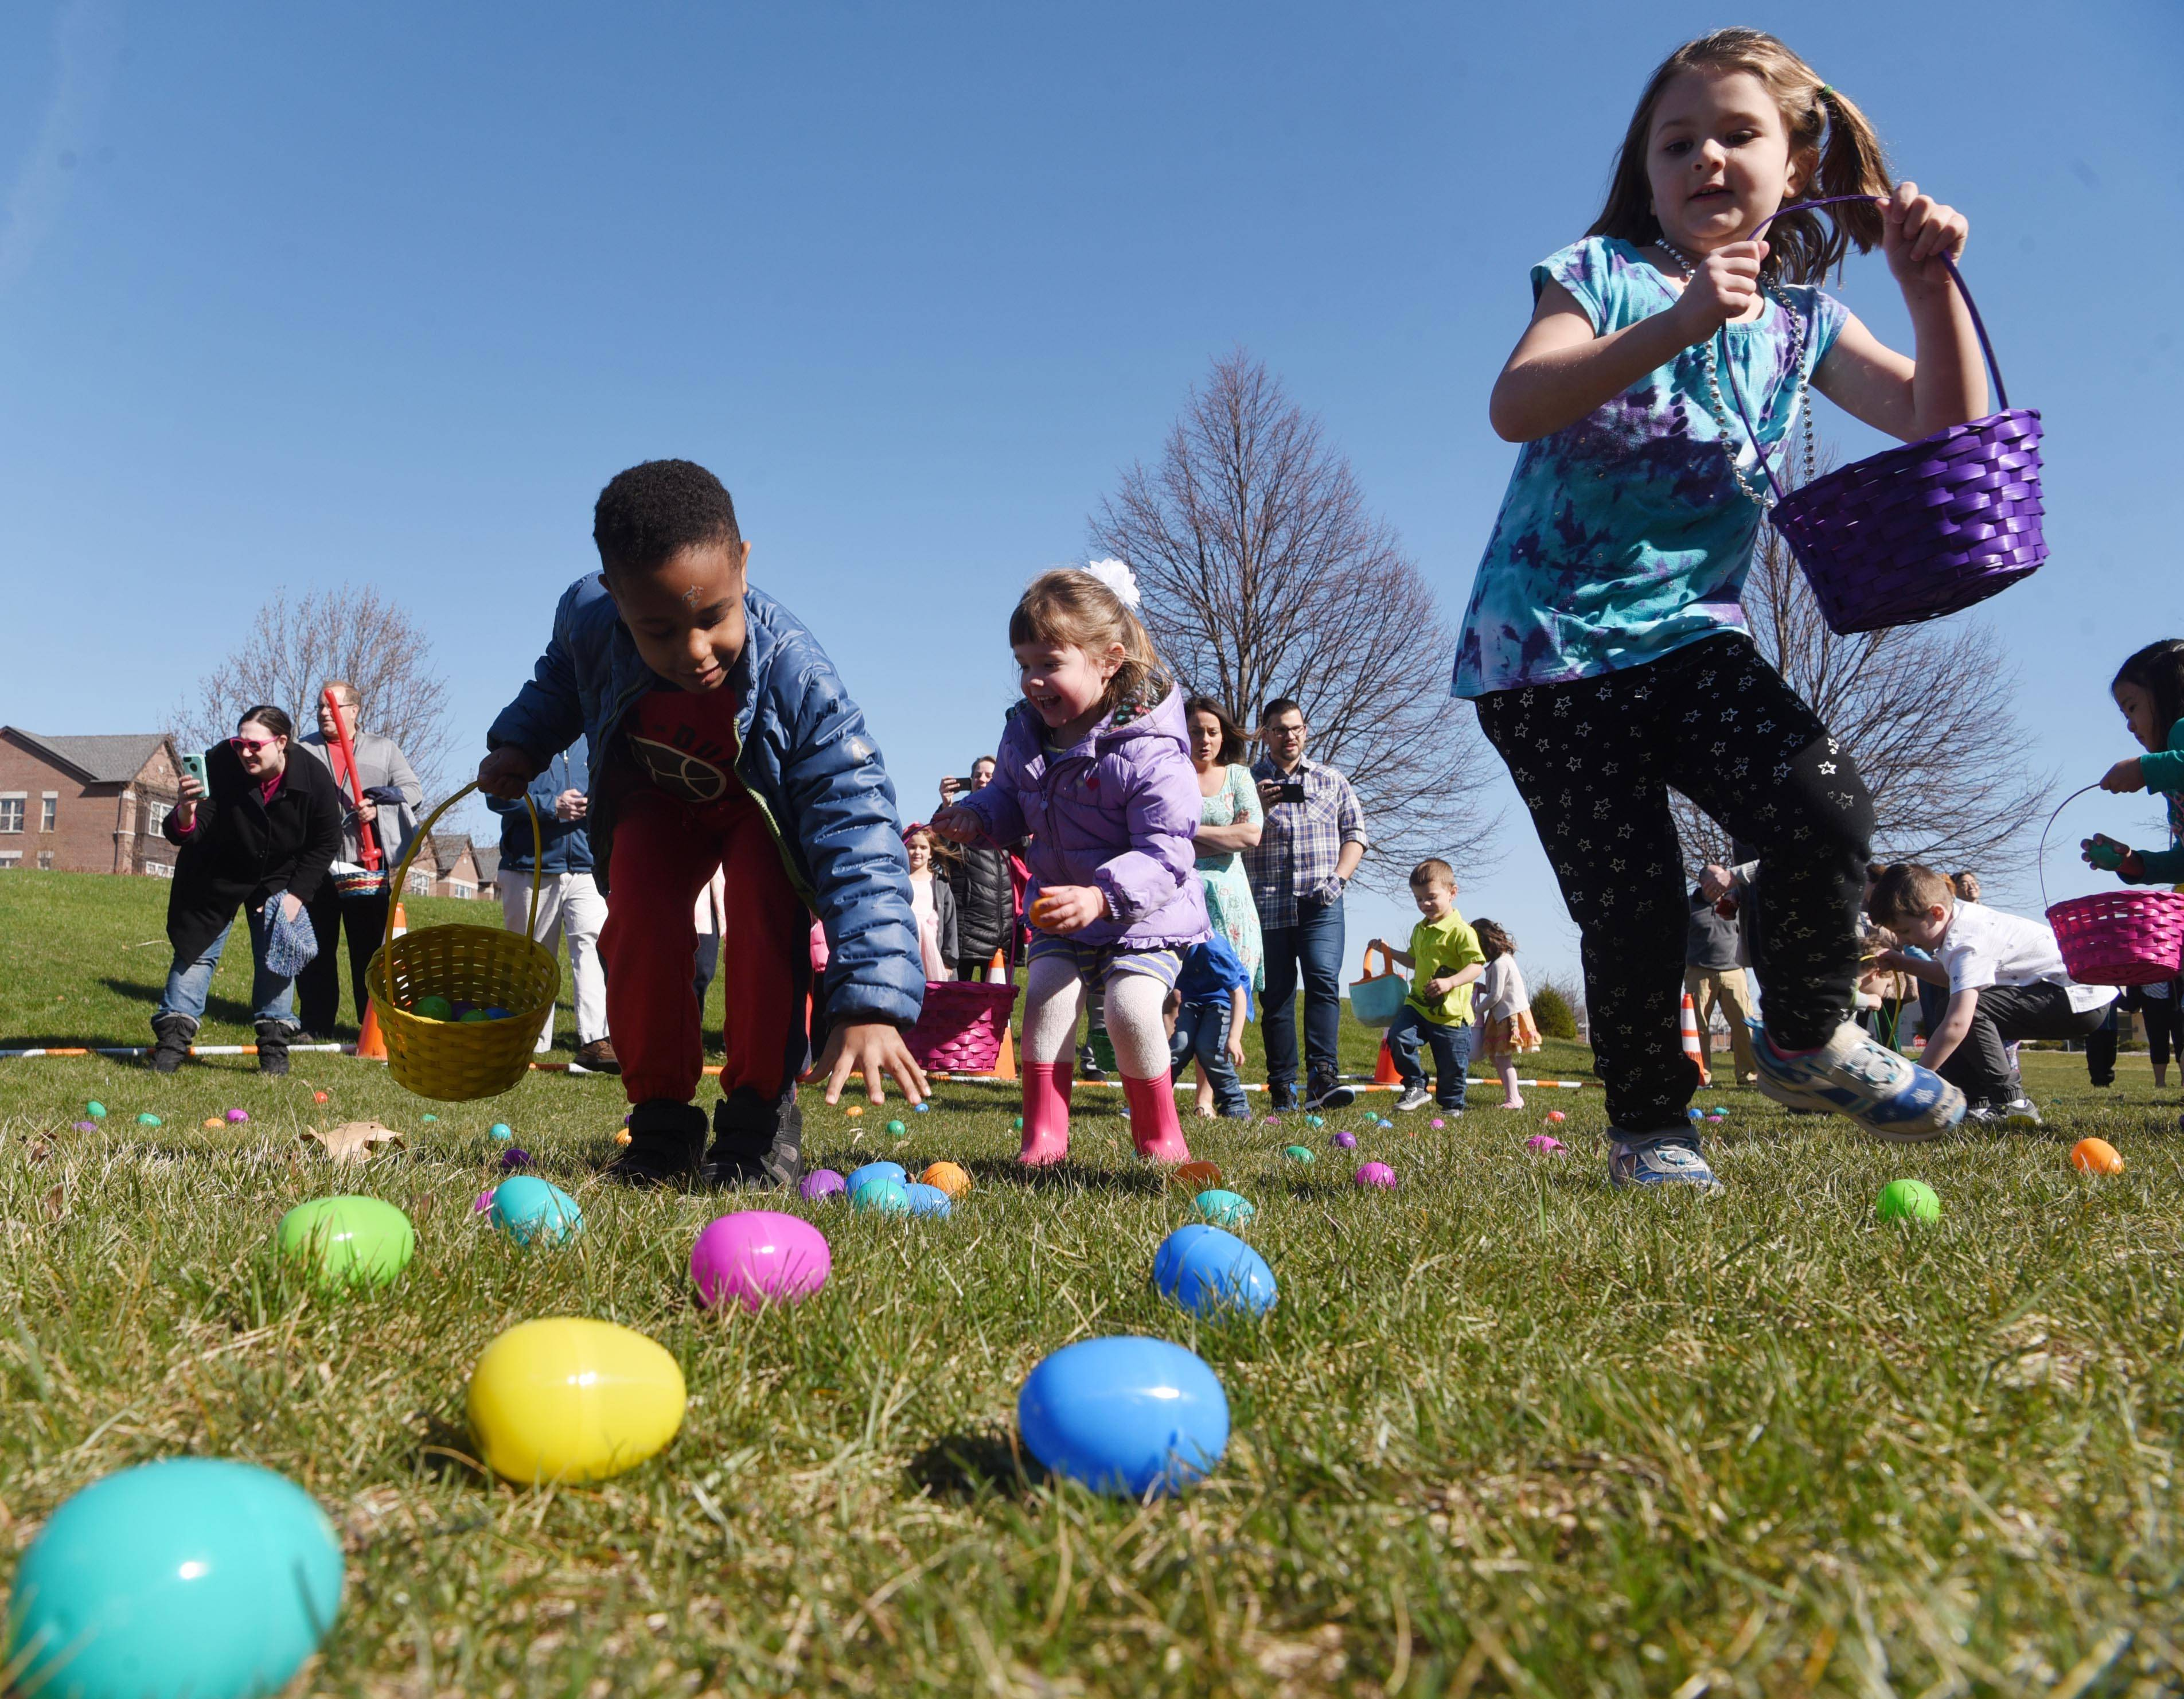 Justin Sitati, 4, left, and Evelyn DeAngelis, 5, right, both of Vernon Hills are among a group of children gathering Easter eggs during the Hoppin' Holiday Hunt at the Sullivan Community Center in Vernon Hills Saturday.